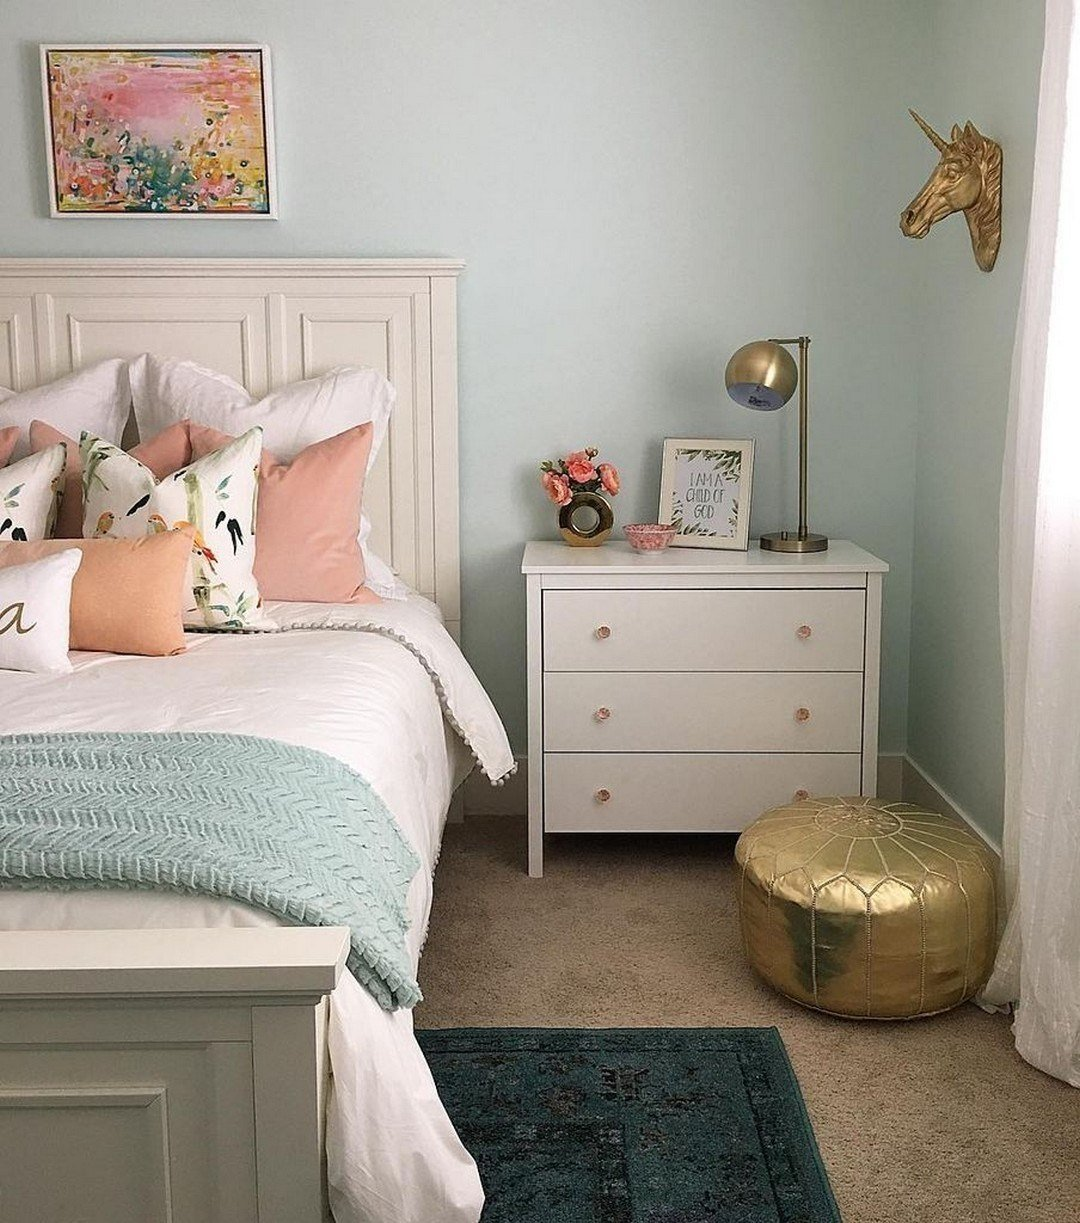 Best Small Master Bedroom Makeover Ideas On A Budget 13 With Pictures